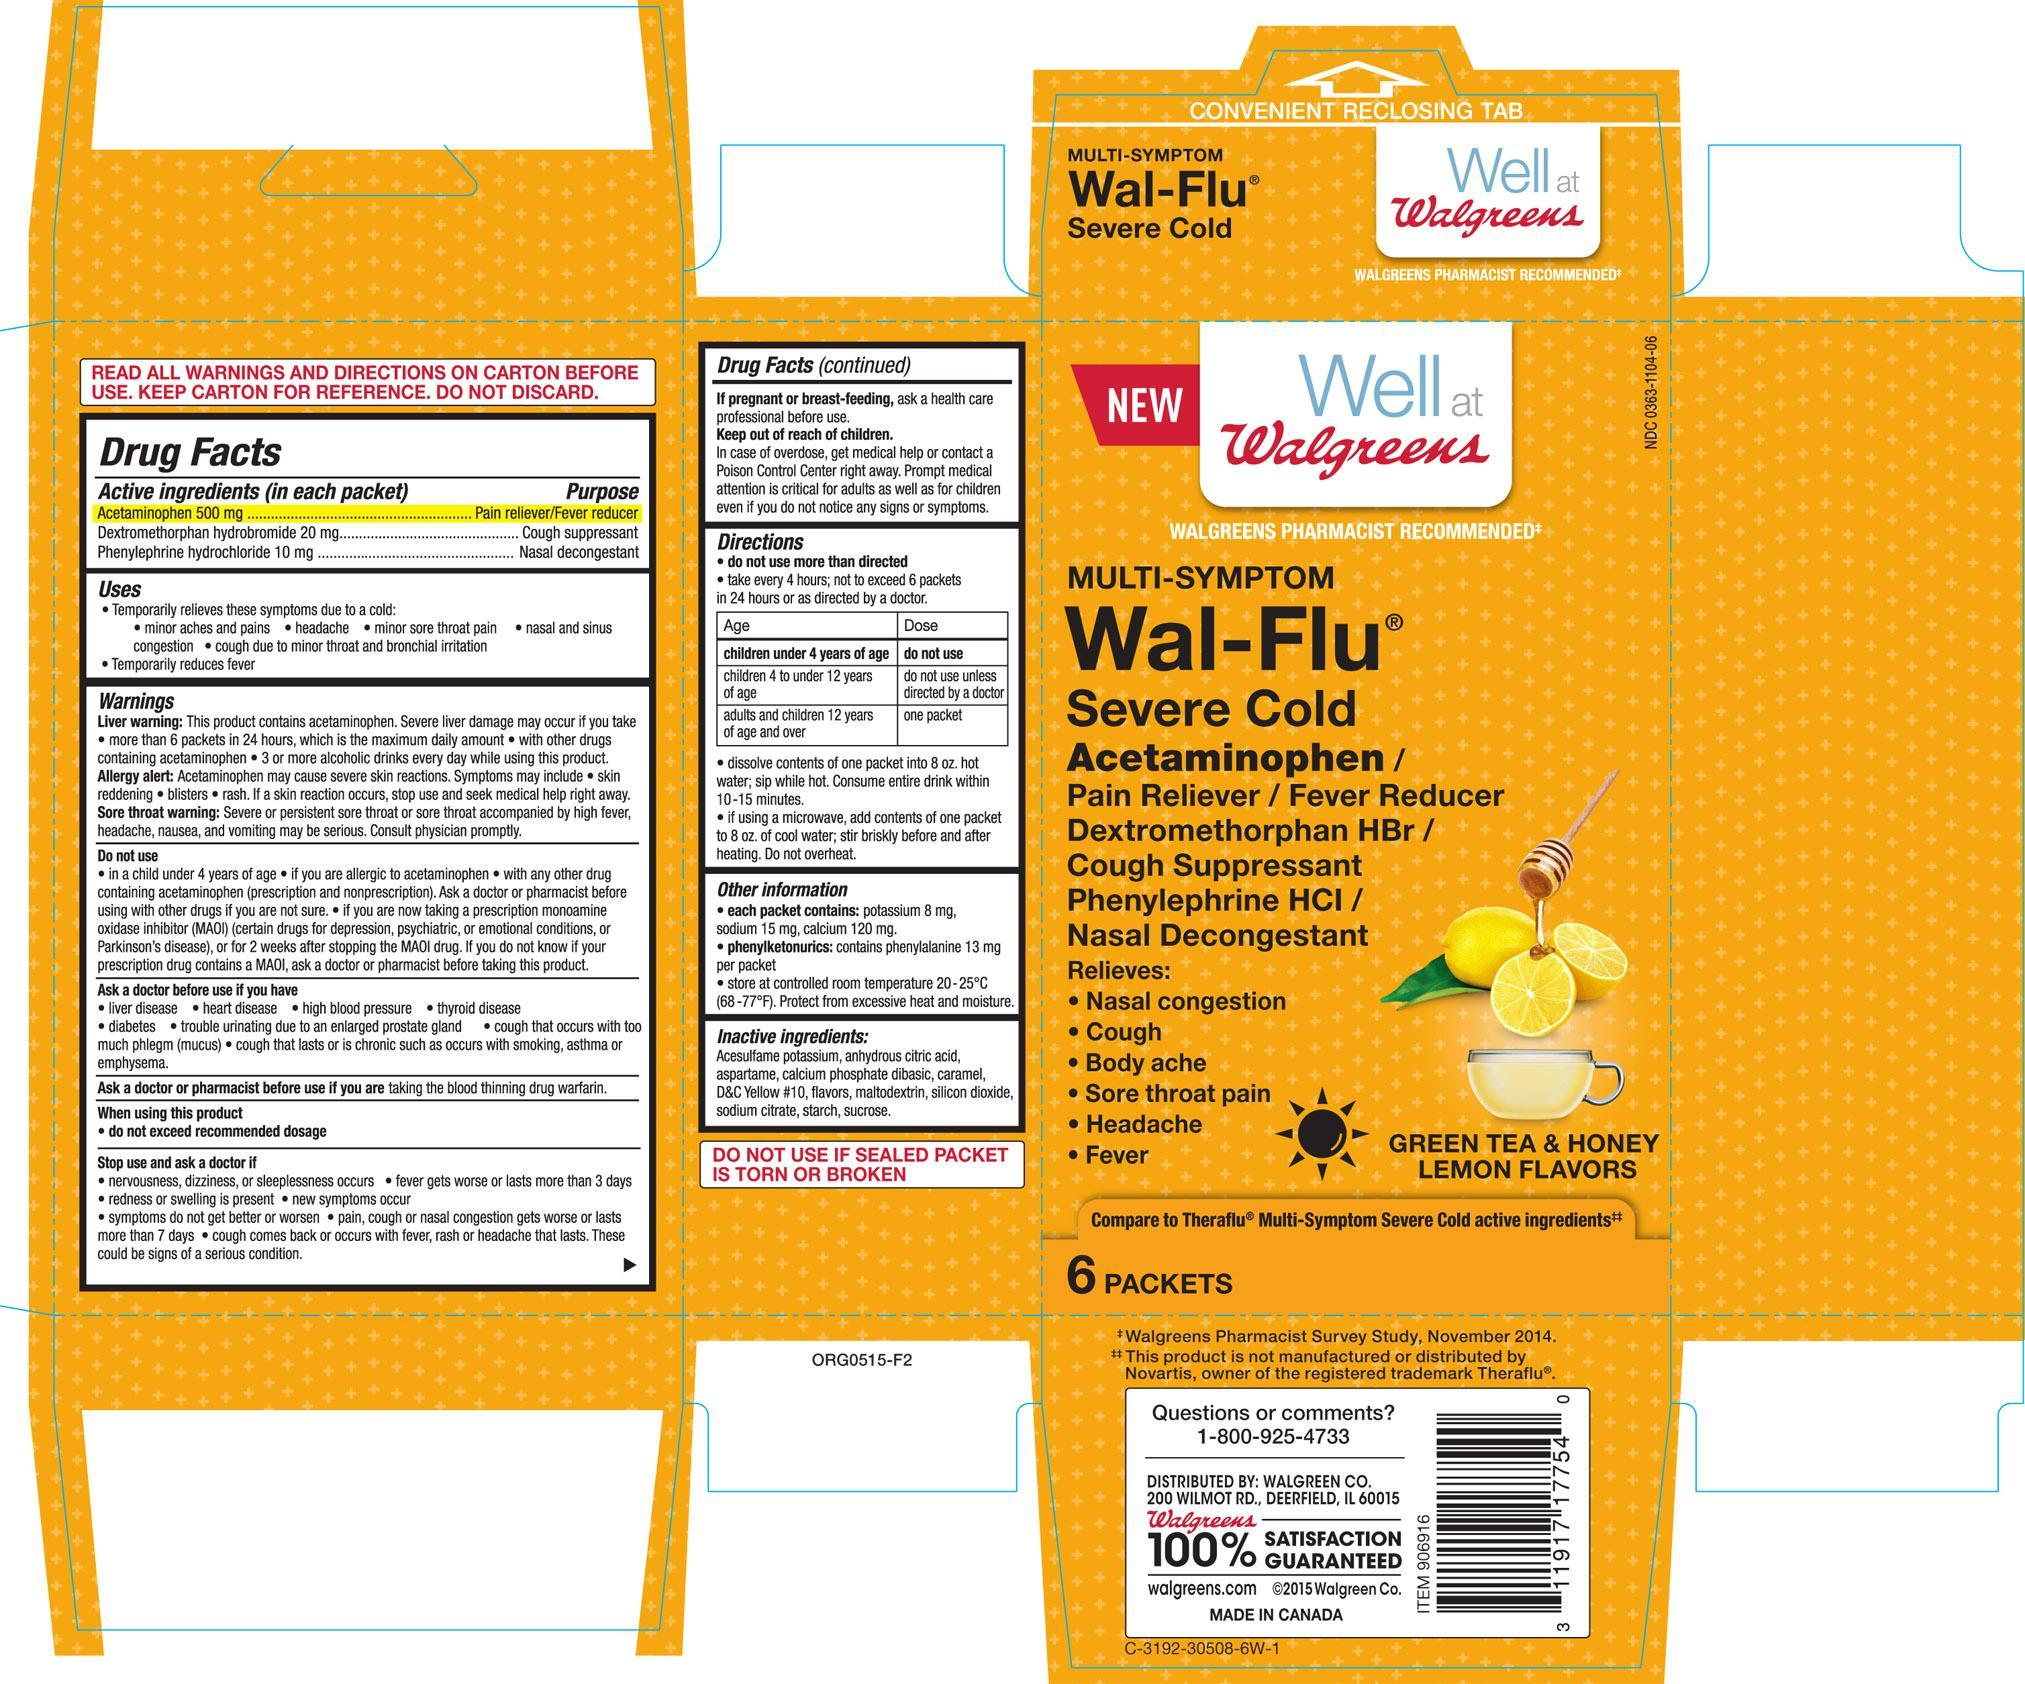 Well At Walgreens Multi-symptom Severe Cold Green Tea And Honey Lemon Flavors (Acetaminophen, Dextromethorphan Hbr And Phenylephrine Hcl) Granule, For Solution [Walgreens Co.]